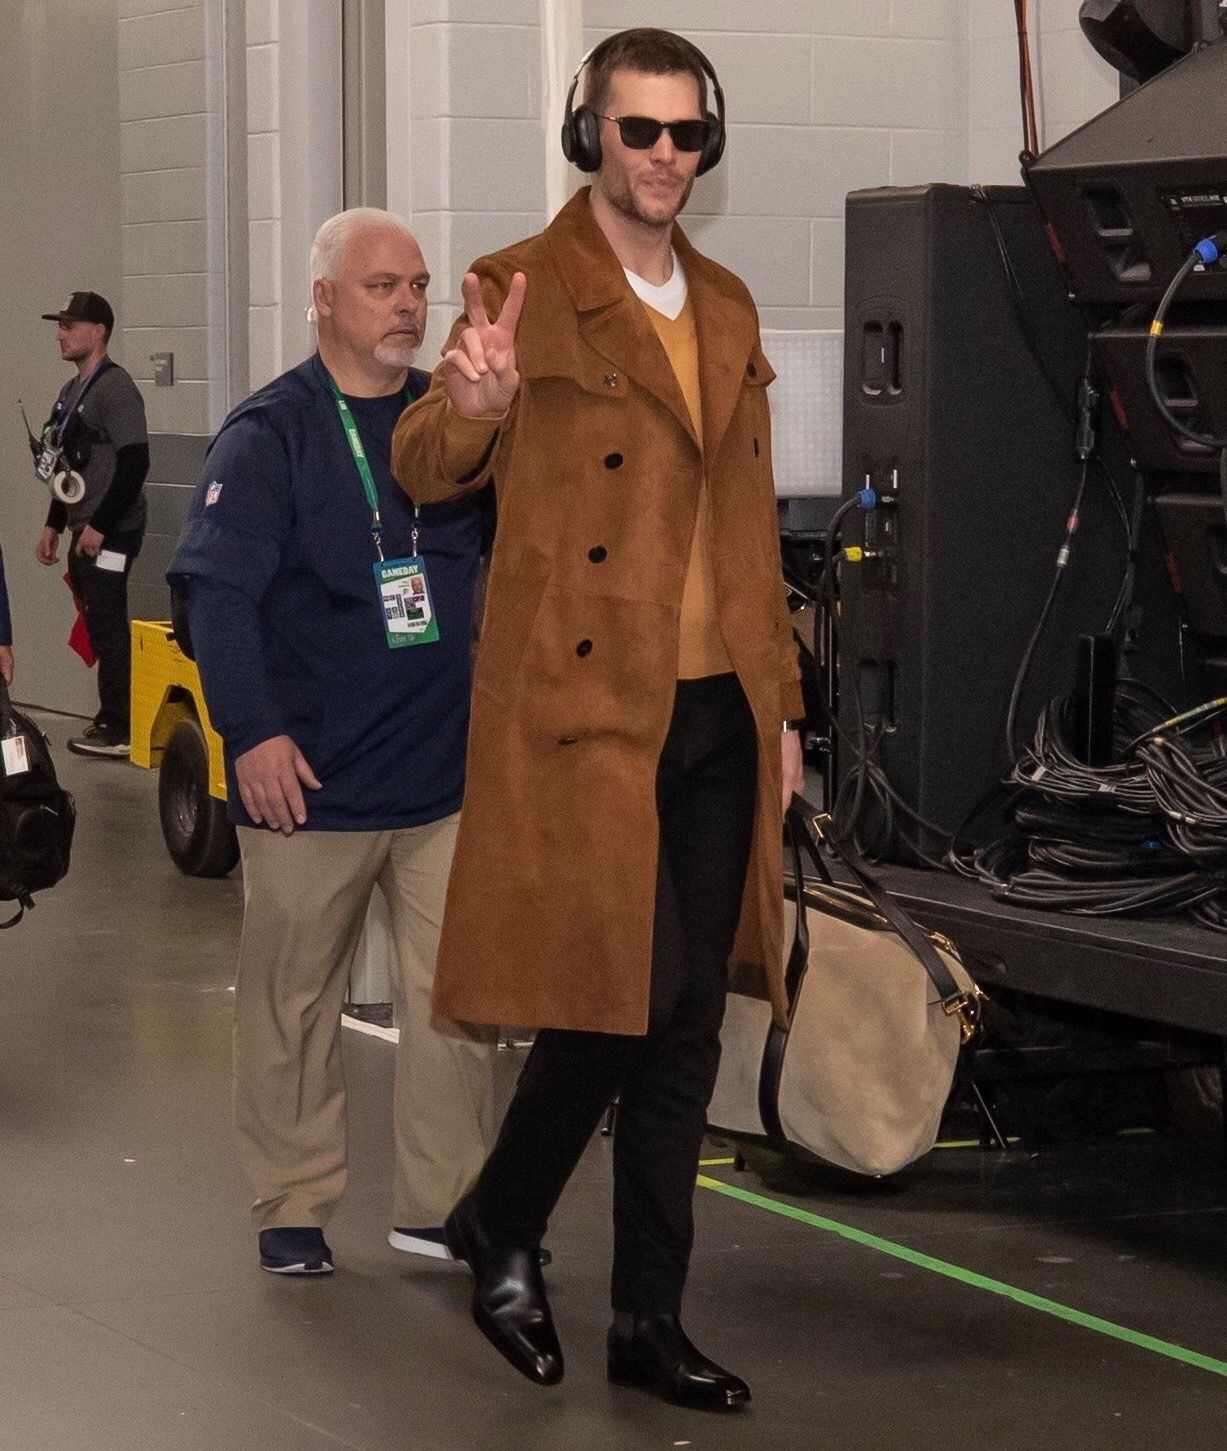 Tom Brady Wore Tom Ford And Carried A Buckley Tote To His Arrival At Super Bowl Liii In Atlanta Tom Ford Tom Brady How To Wear [ 1451 x 1227 Pixel ]